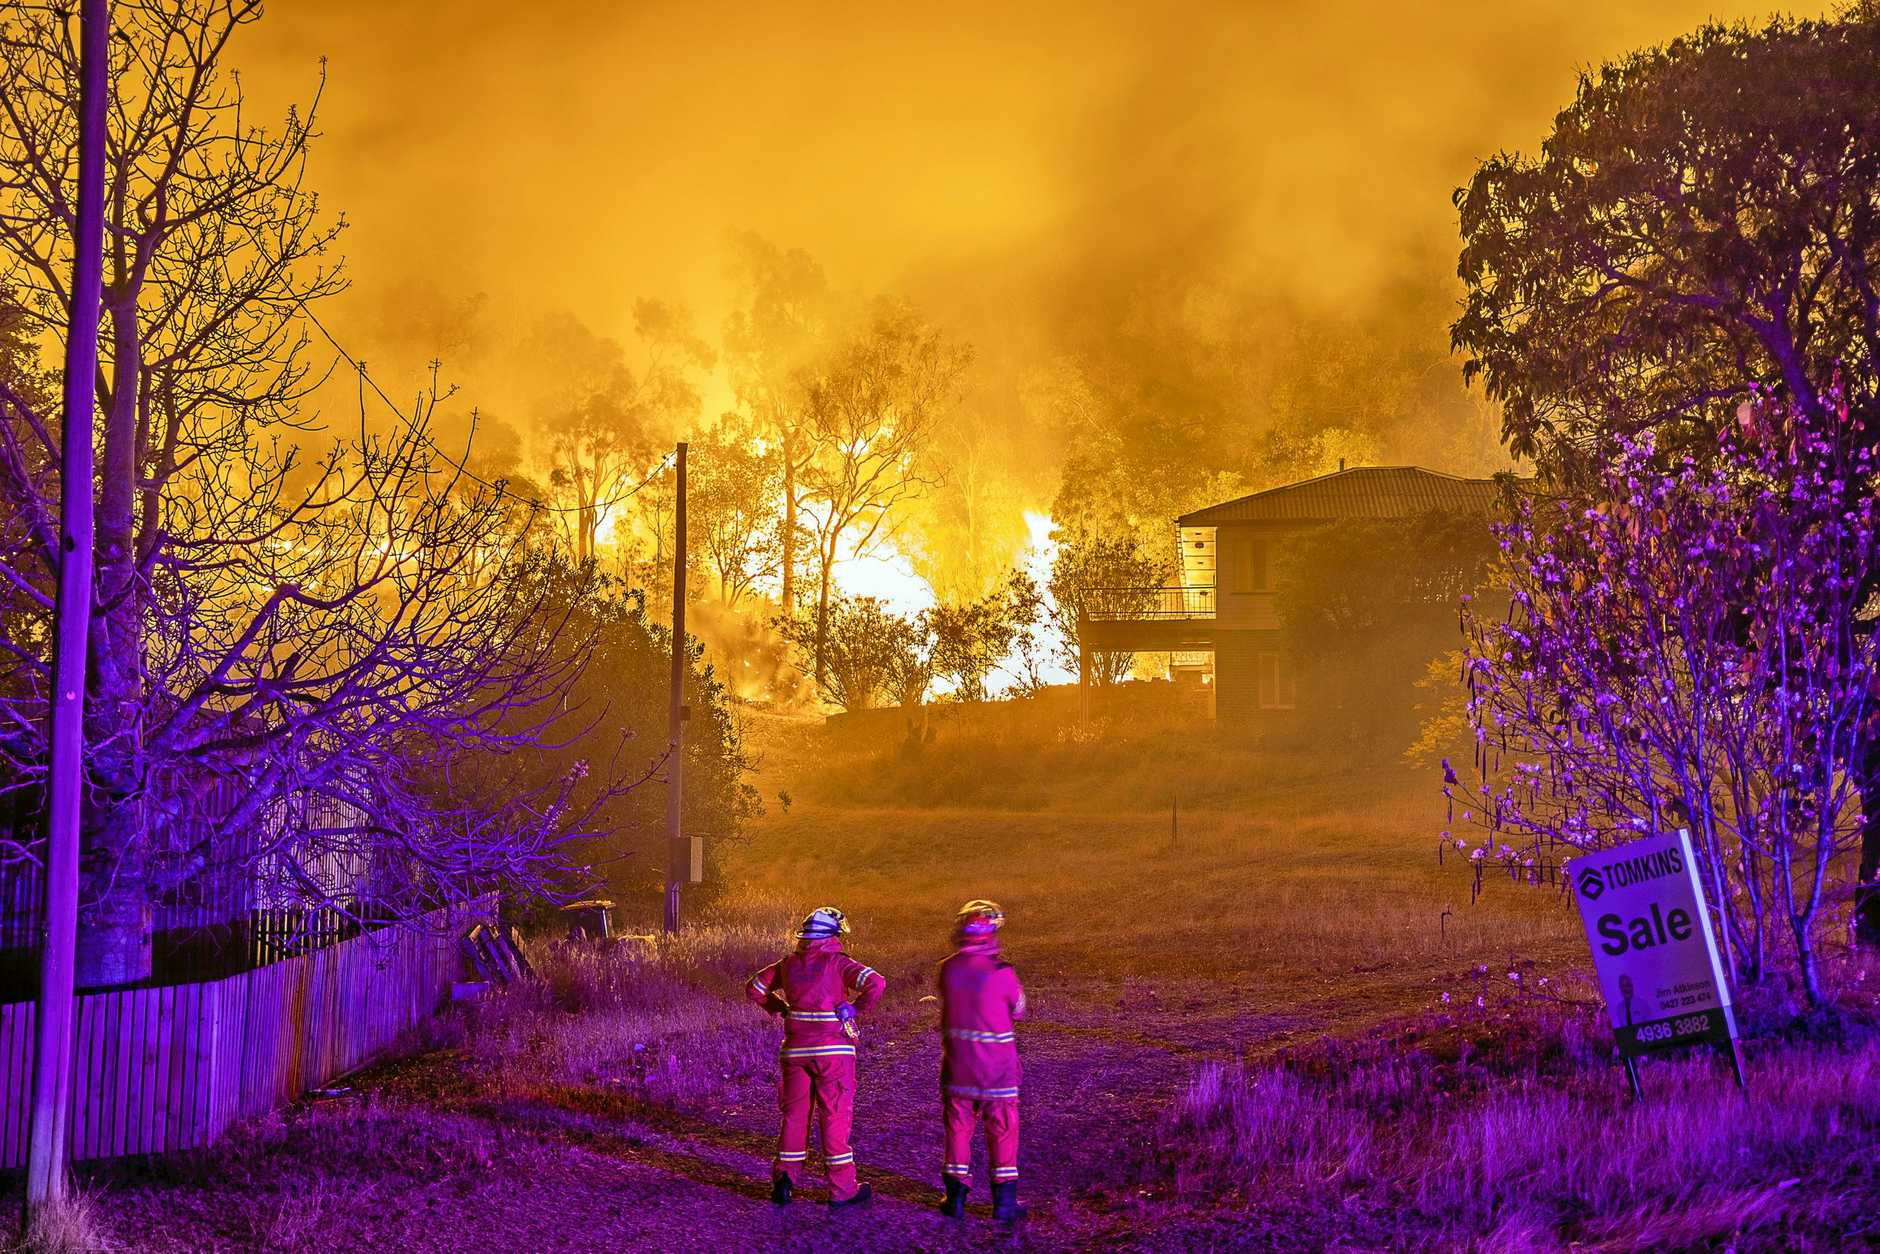 HARD WORKERS: Firefighters work to keep a bushfire away from houses.